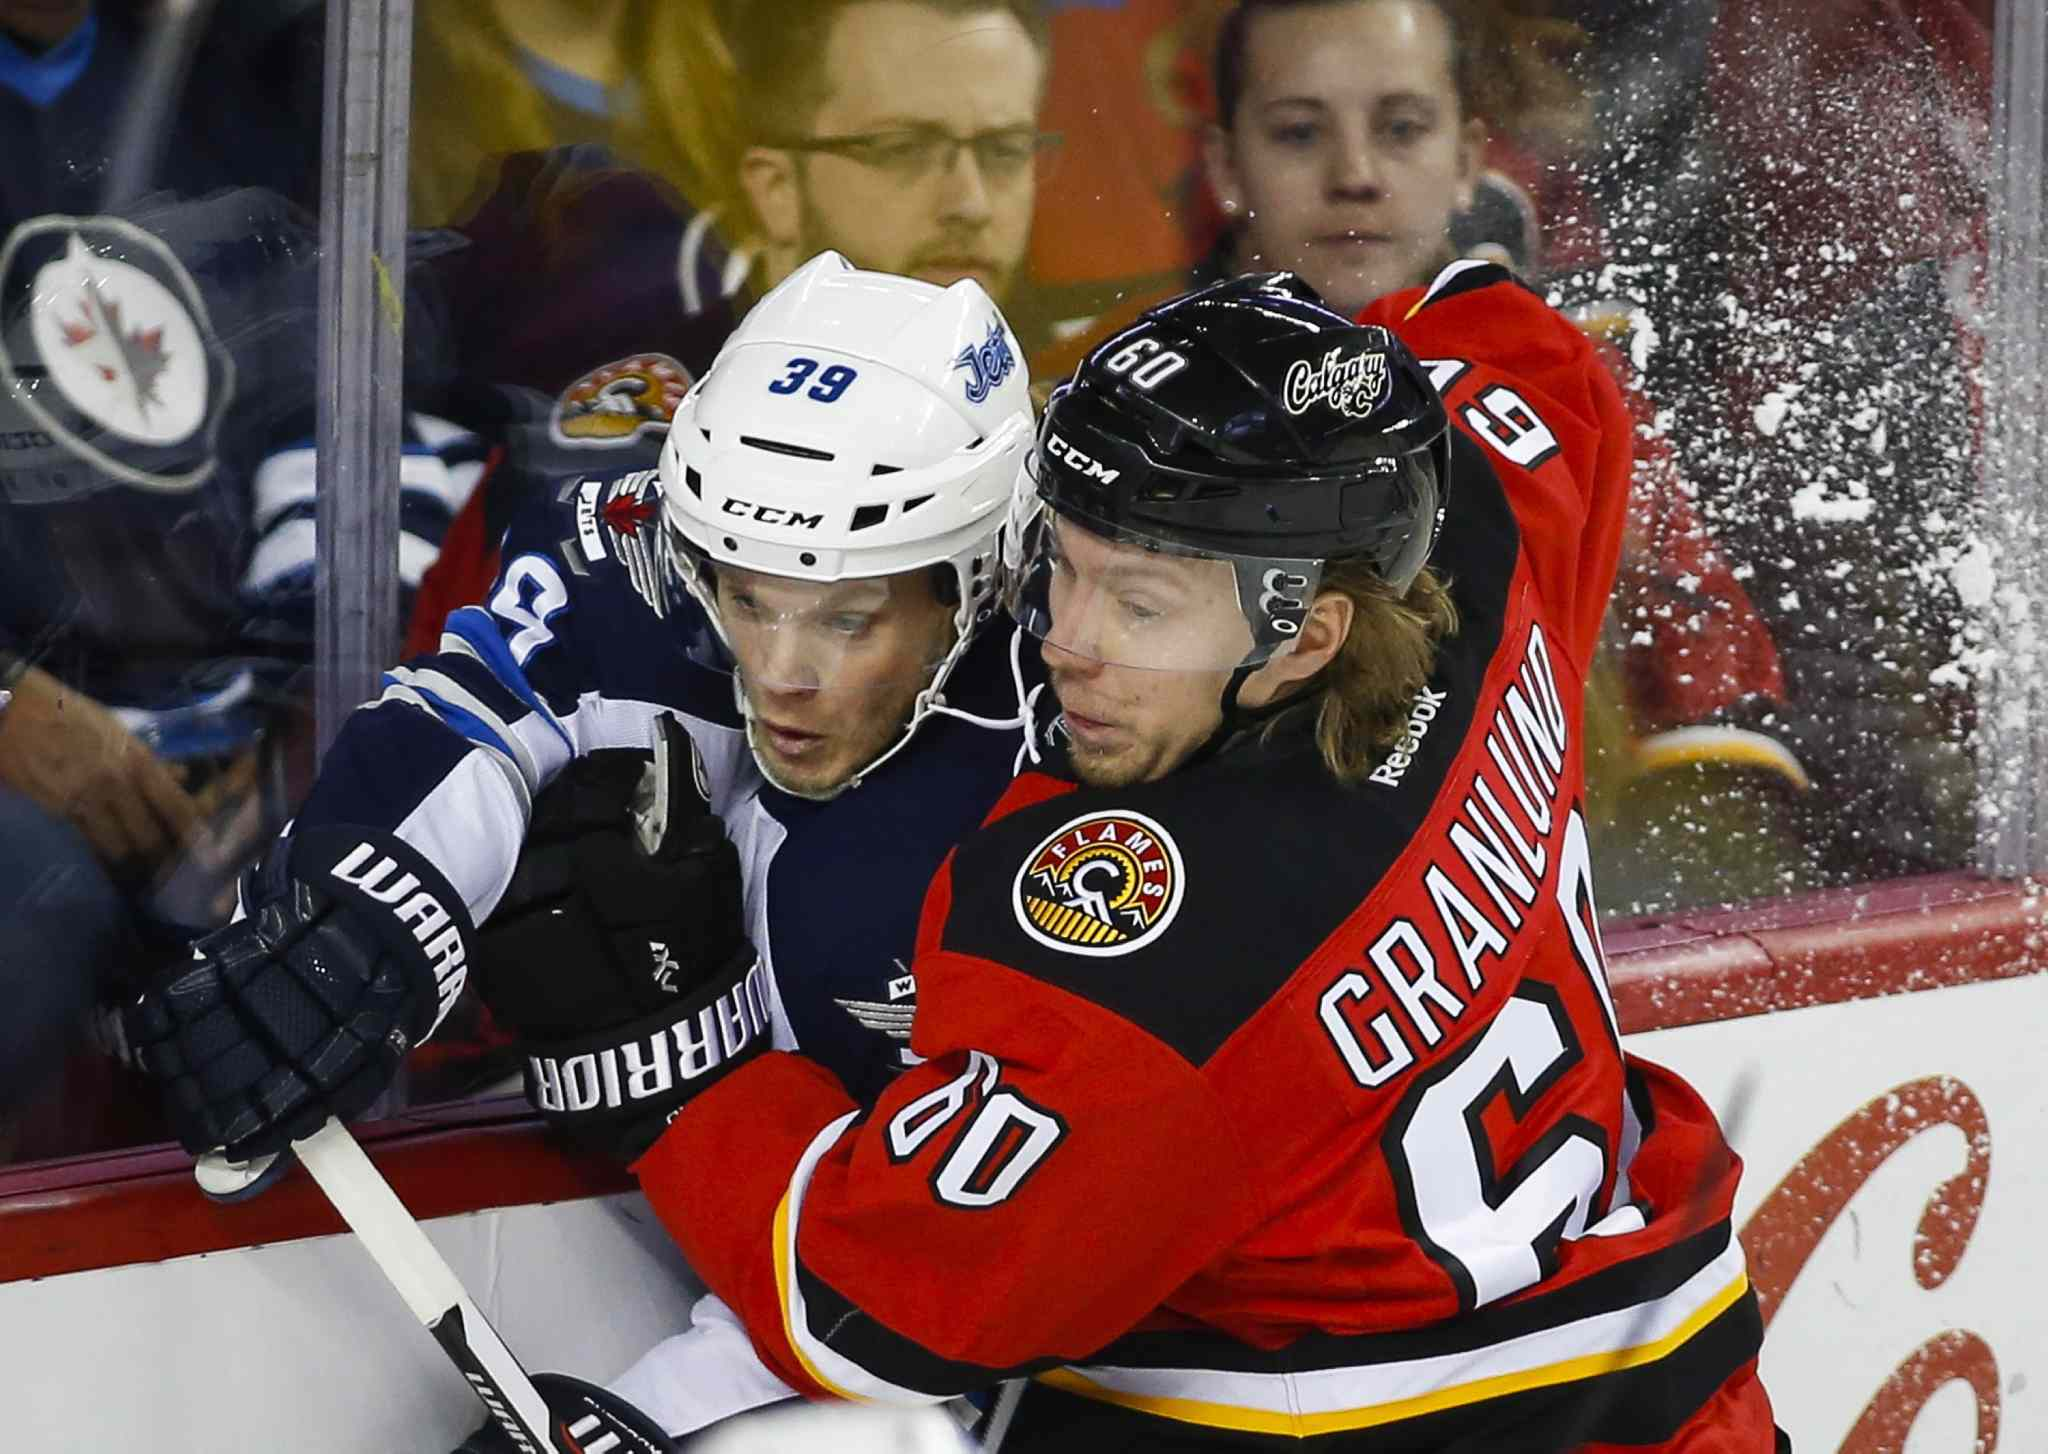 Winnipeg Jets' Tobias Enstrom, left, of Sweden, is checked by Calgary Flames' Markus Granlund, from Finland, during first period NHL hockey action in Calgary, Tuesday, Dec. 22, 2015.THE CANADIAN PRESS/Jeff McIntosh